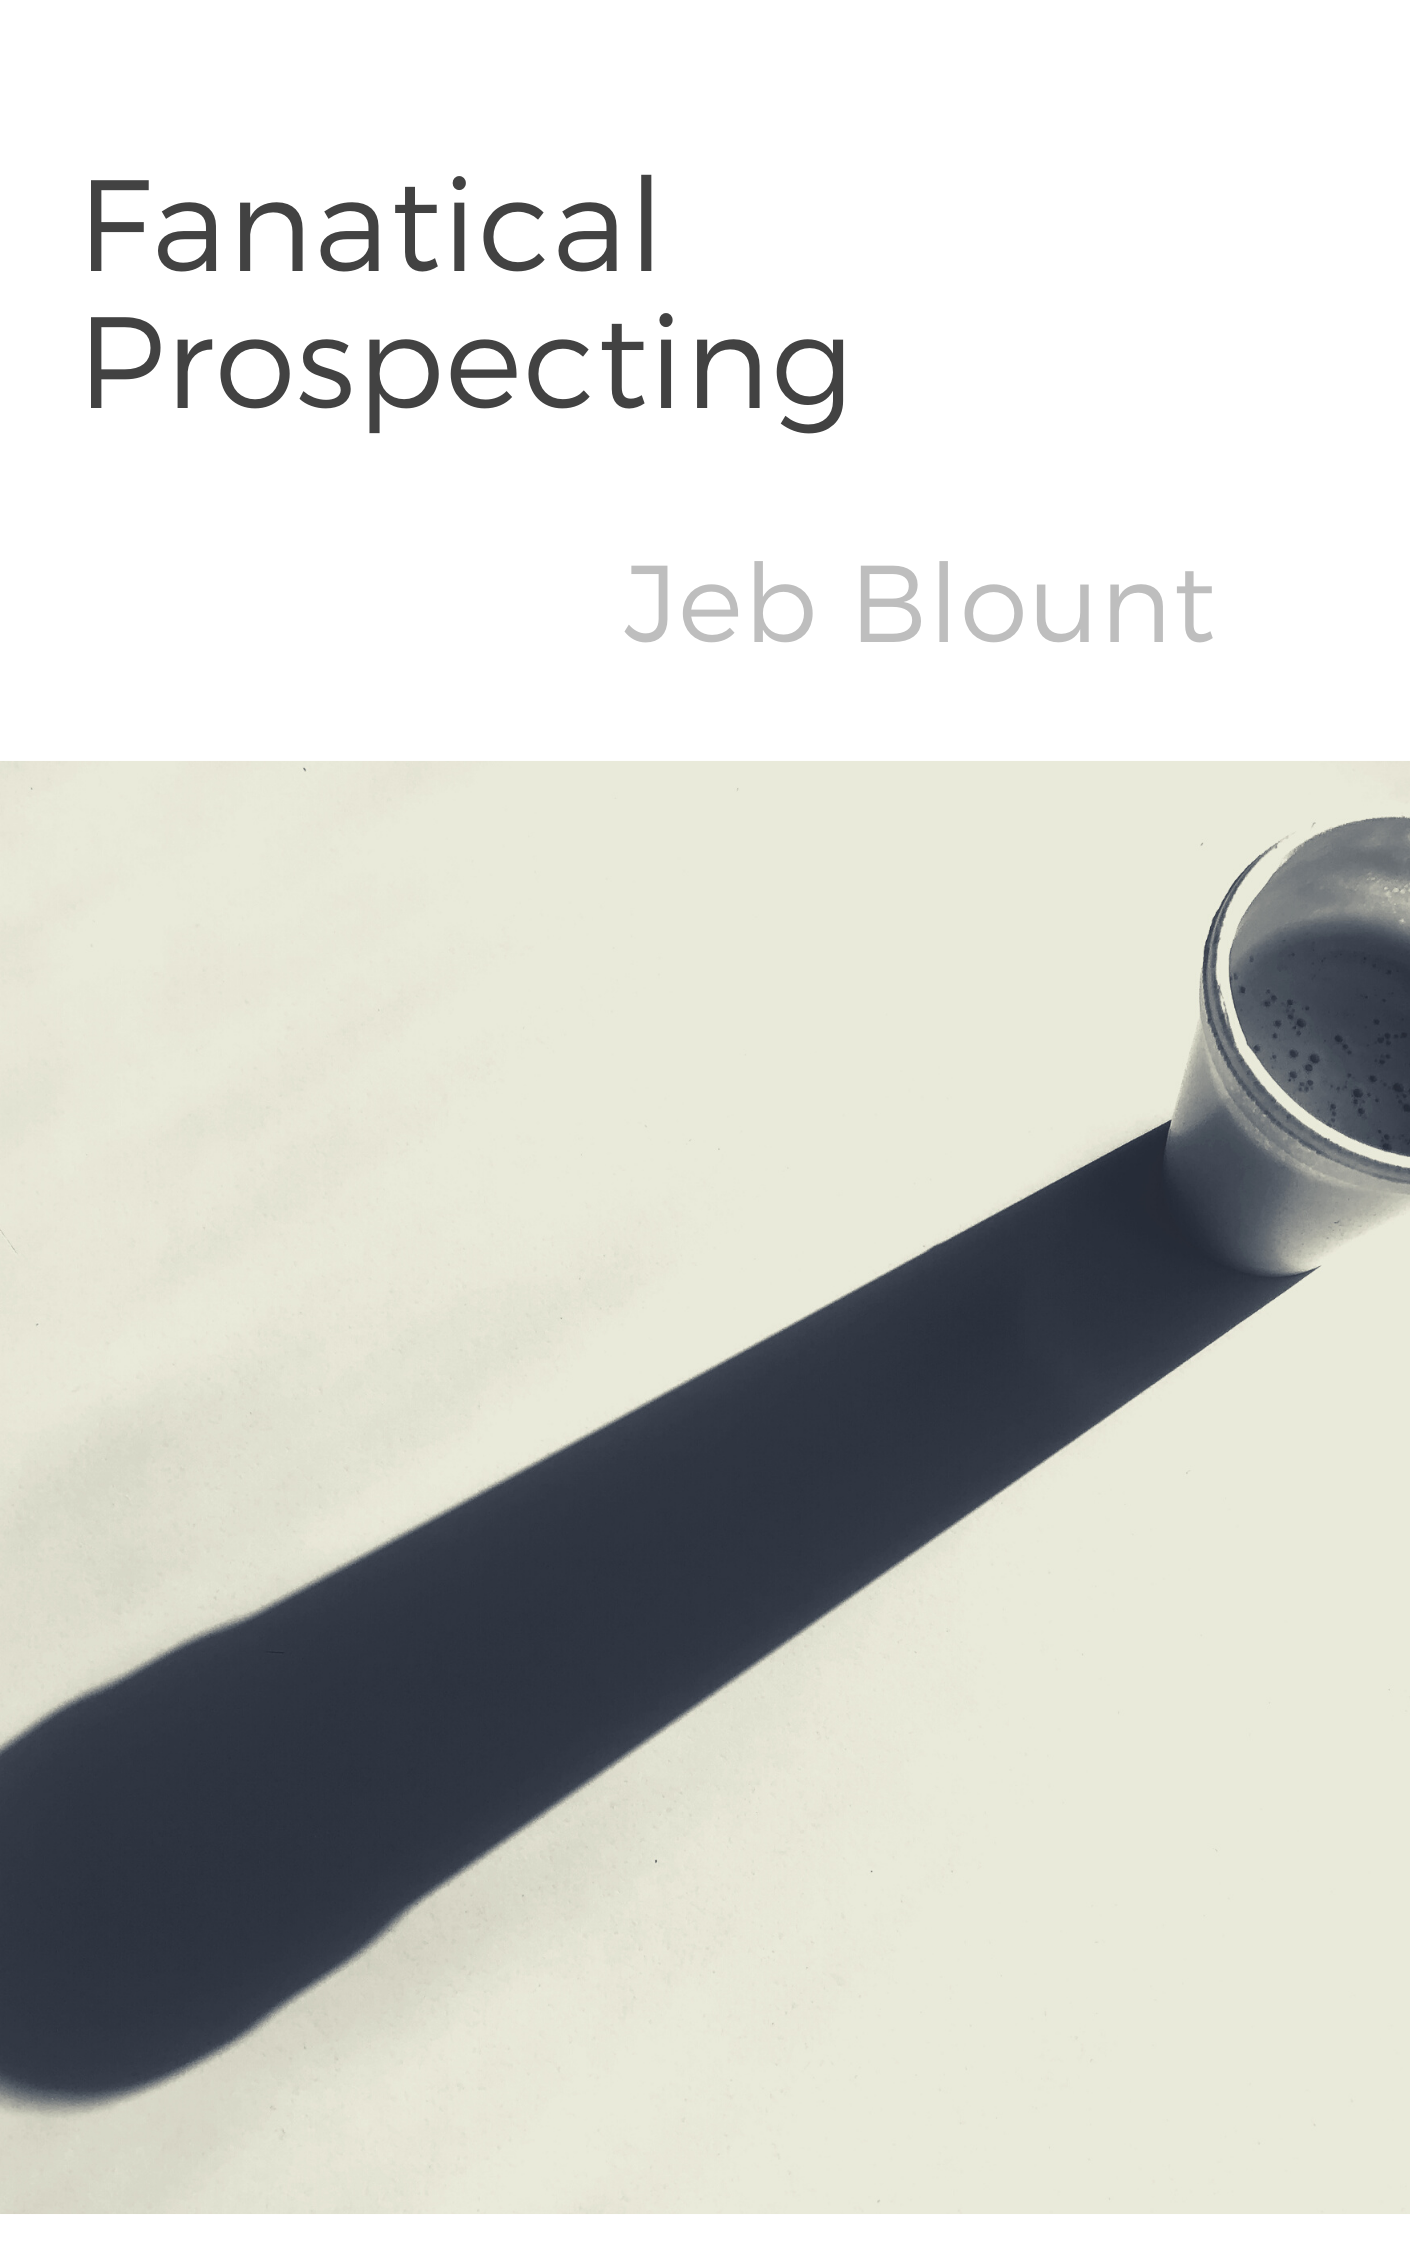 book summary - Fanatical Prospecting by Jeb Blount